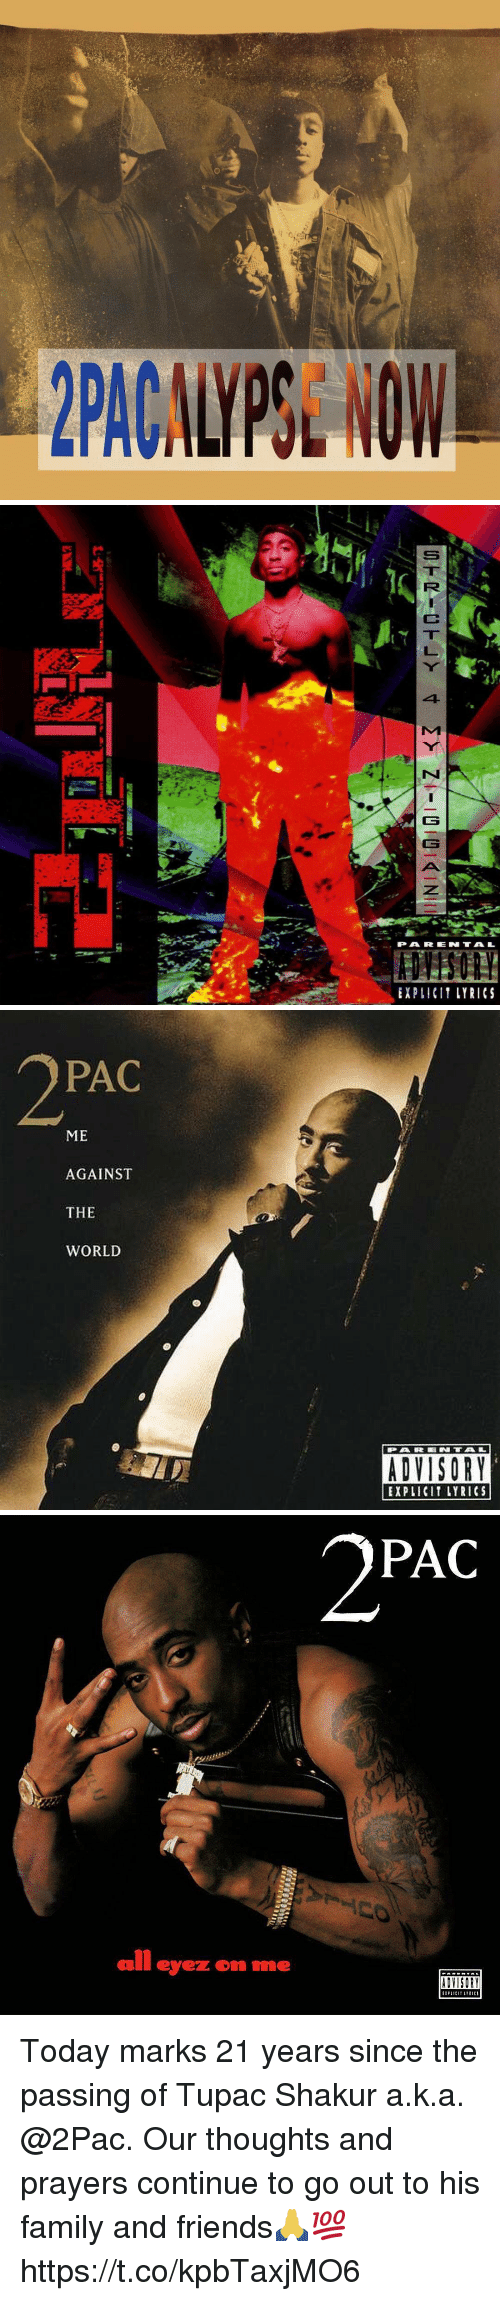 Family, Friends, and Tupac Shakur: 41  PARE N TAL  EXPLICI LYRICS   PAC  ME  AGAINST  THE  WORLD  EXPLICIT LYRICS   PAC  all eyez om me  ADVISORY Today marks 21 years since the passing of Tupac Shakur a.k.a. @2Pac. Our thoughts and prayers continue to go out to his family and friends🙏💯 https://t.co/kpbTaxjMO6